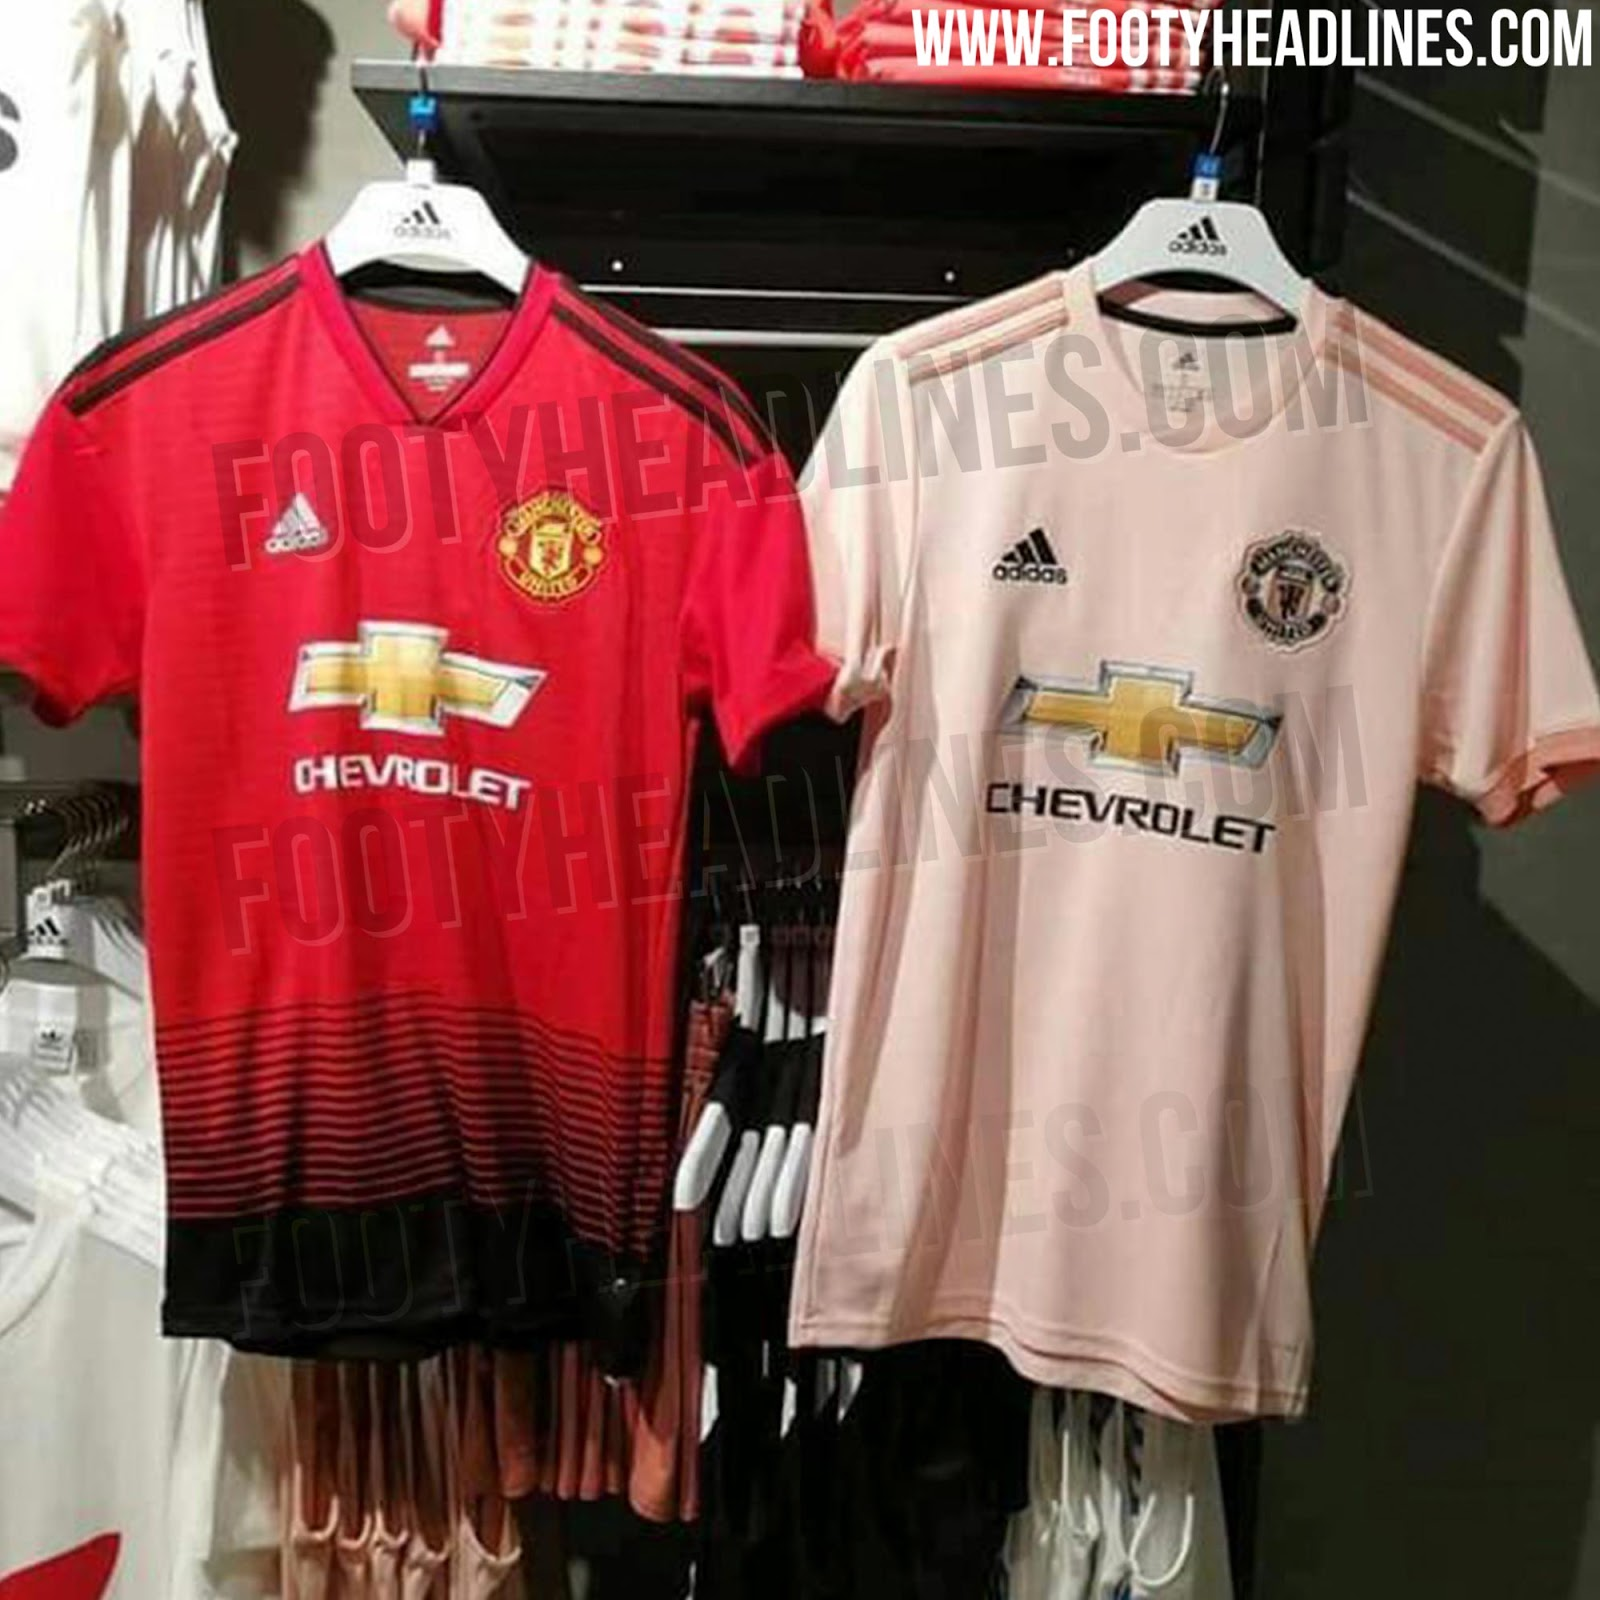 release date a8ff6 14546 PICS: Manchester United's new pink away shirt has been ...